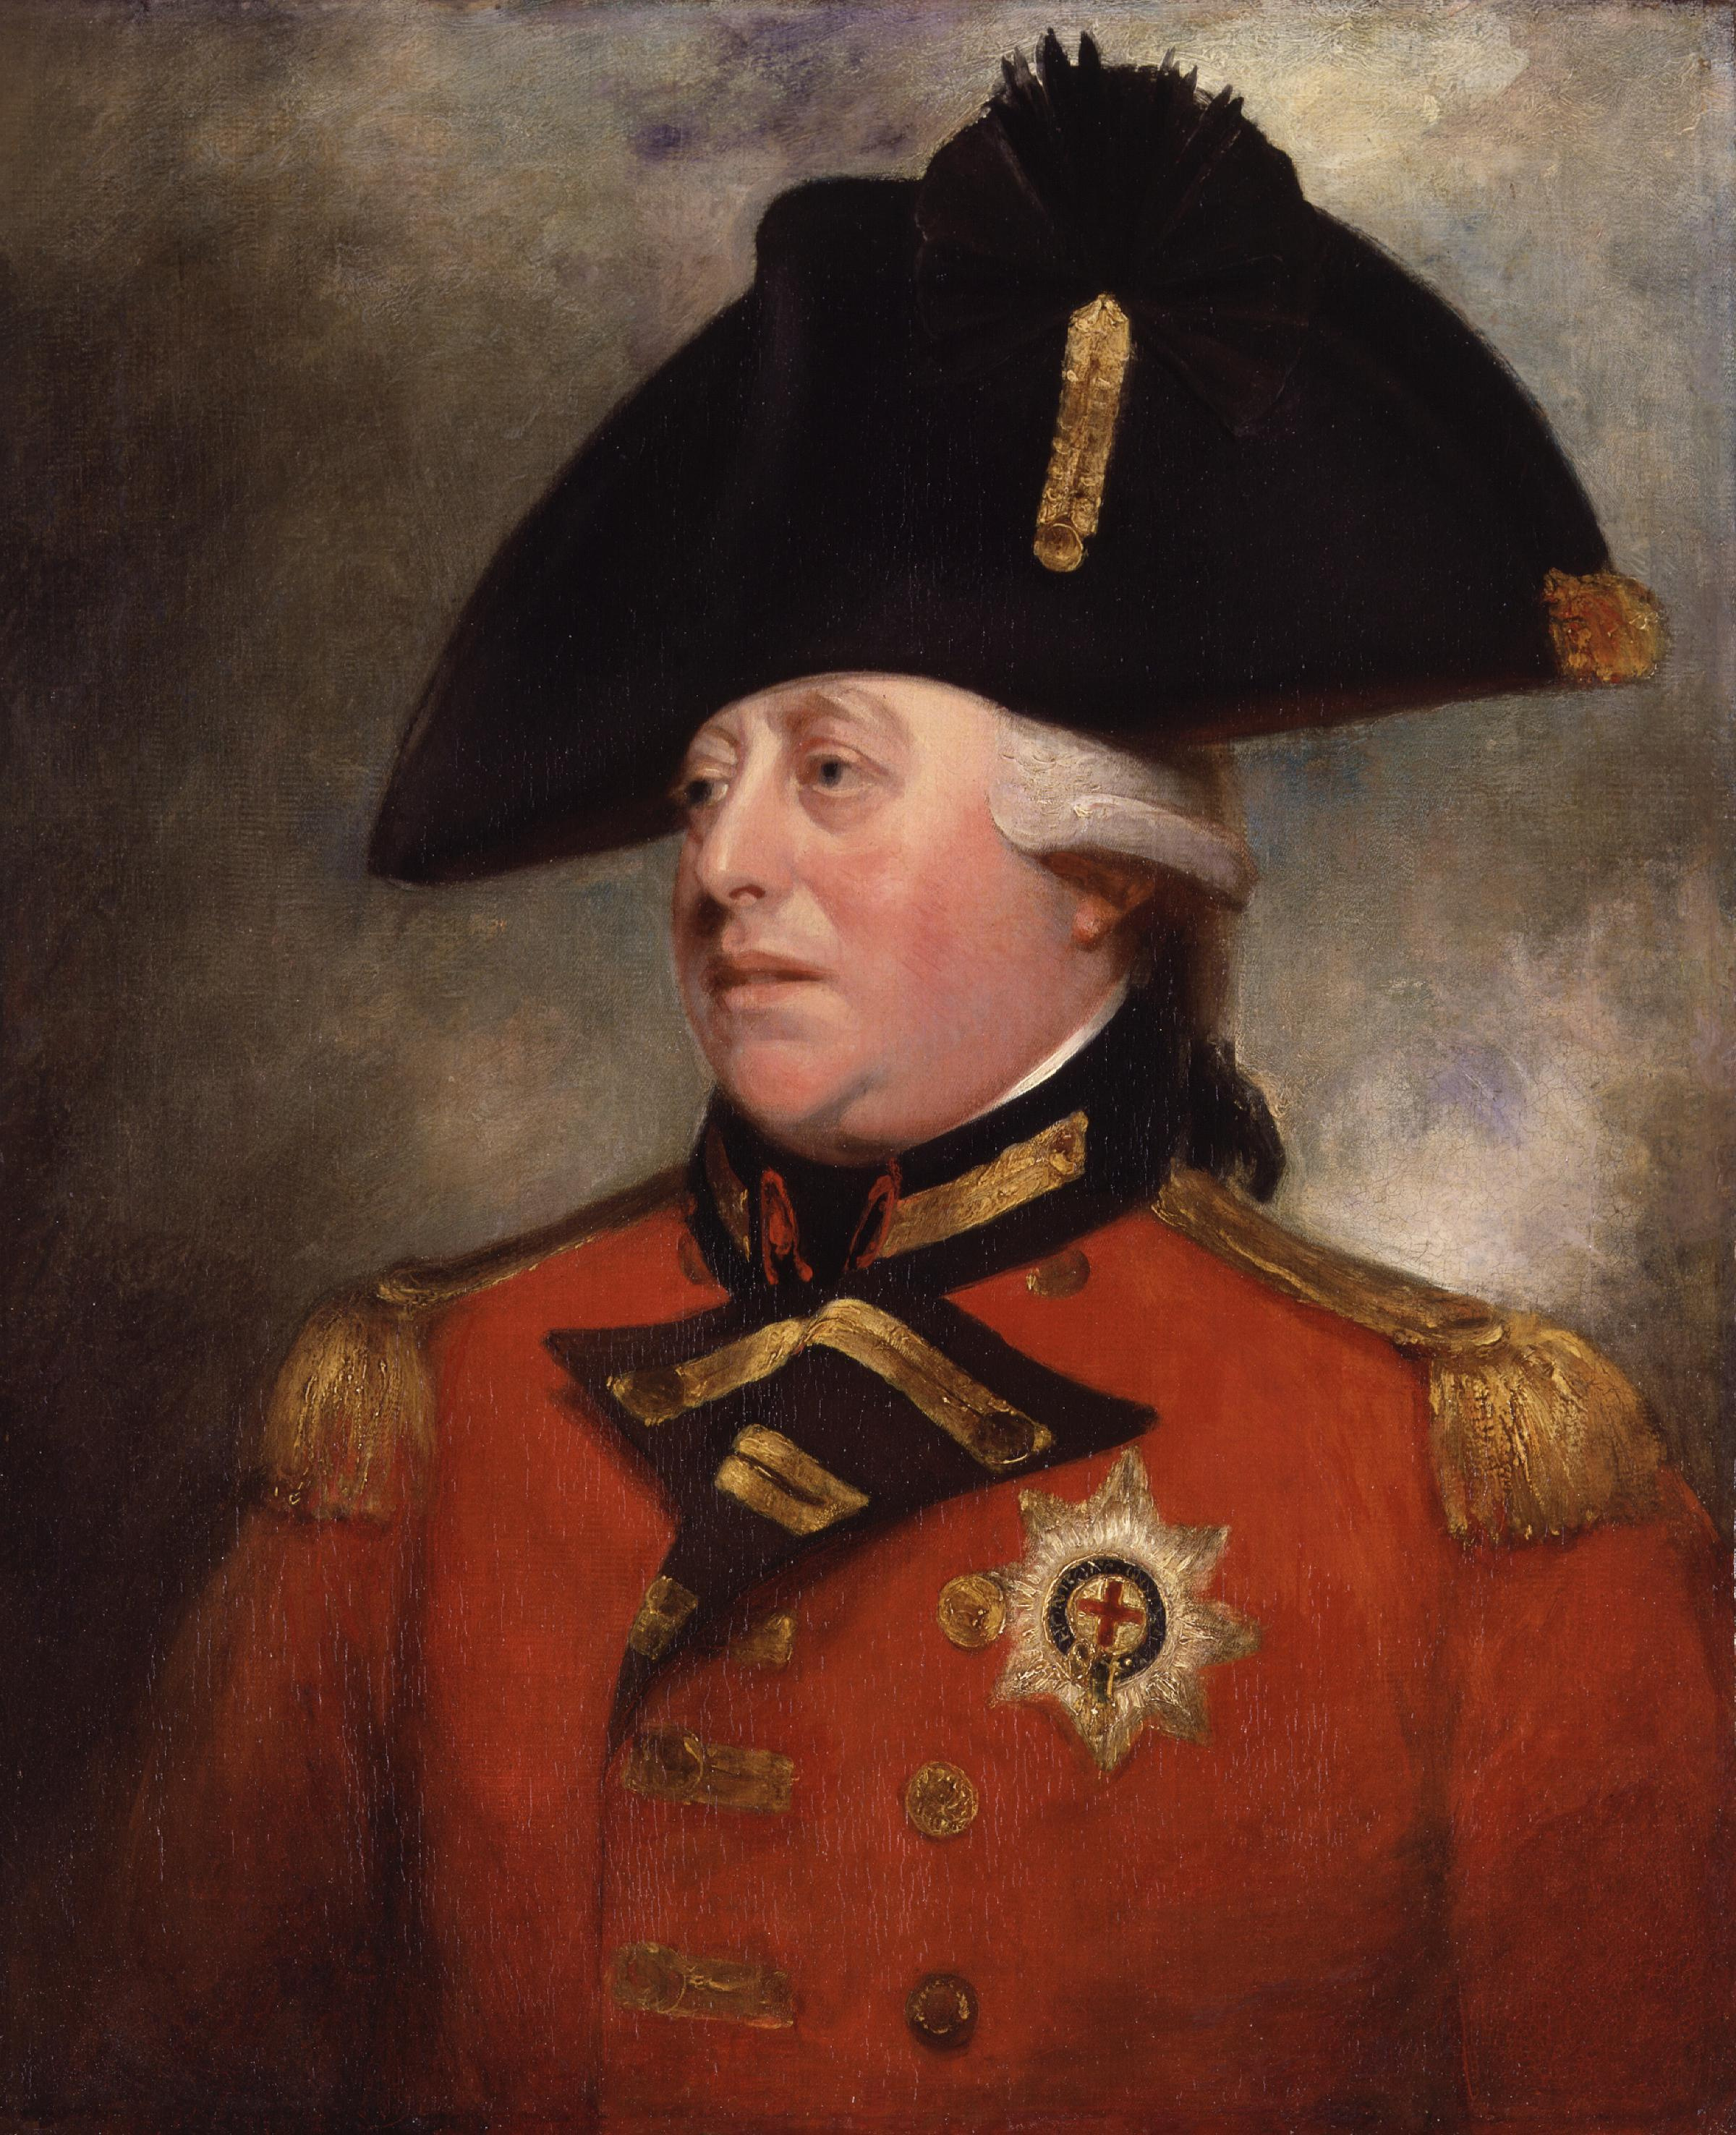 File:King George III by Sir William Beechey.jpg - Wikipedia, the ...